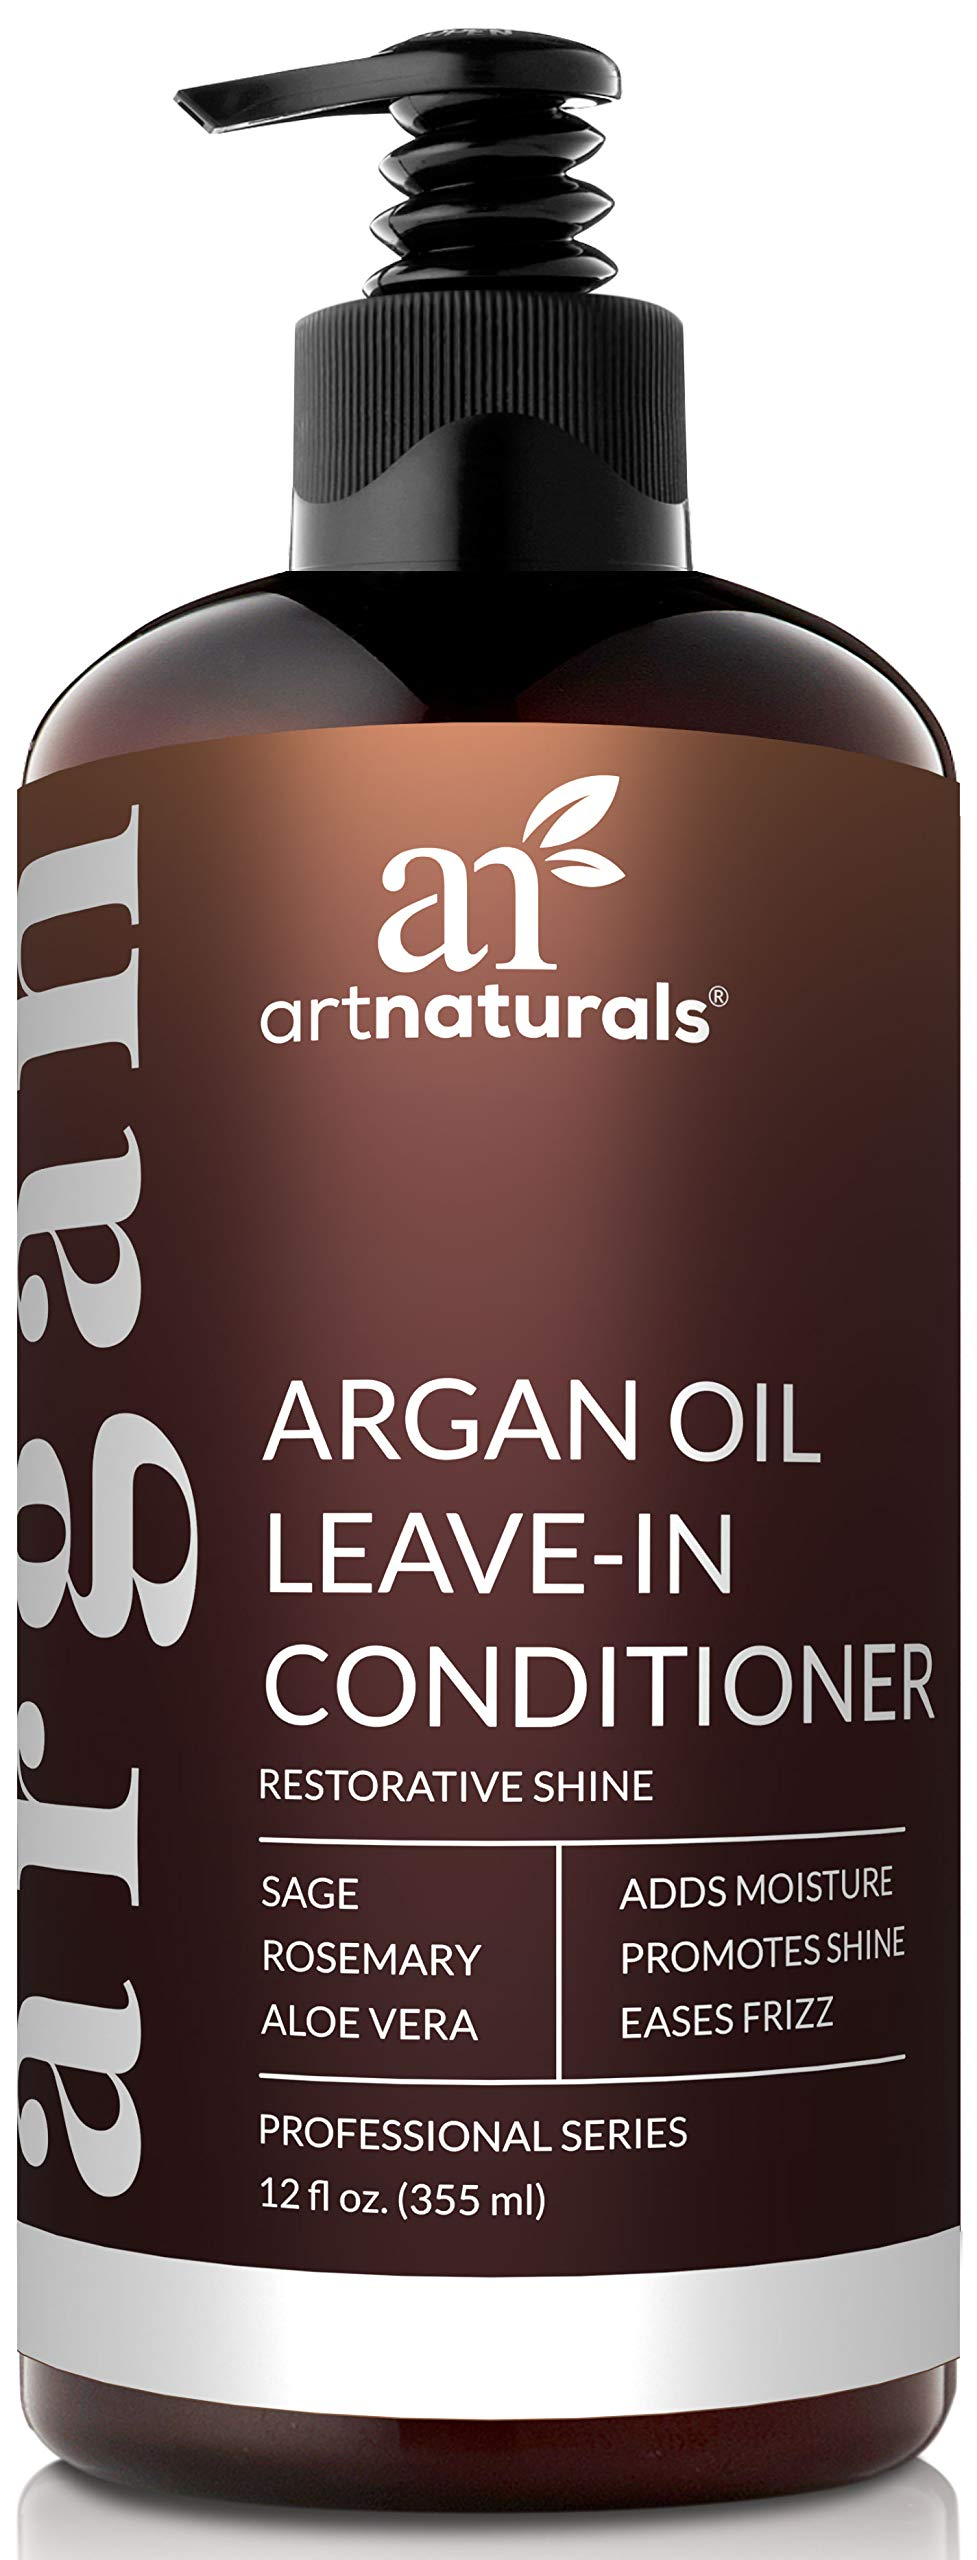 ArtNaturals Argan Oil Leave-In Conditioner - 12 oz Made with Organic and Natural Ingredients - for All Hair Types – Treatment for Damaged, Dry, Color Treated and Hair Loss